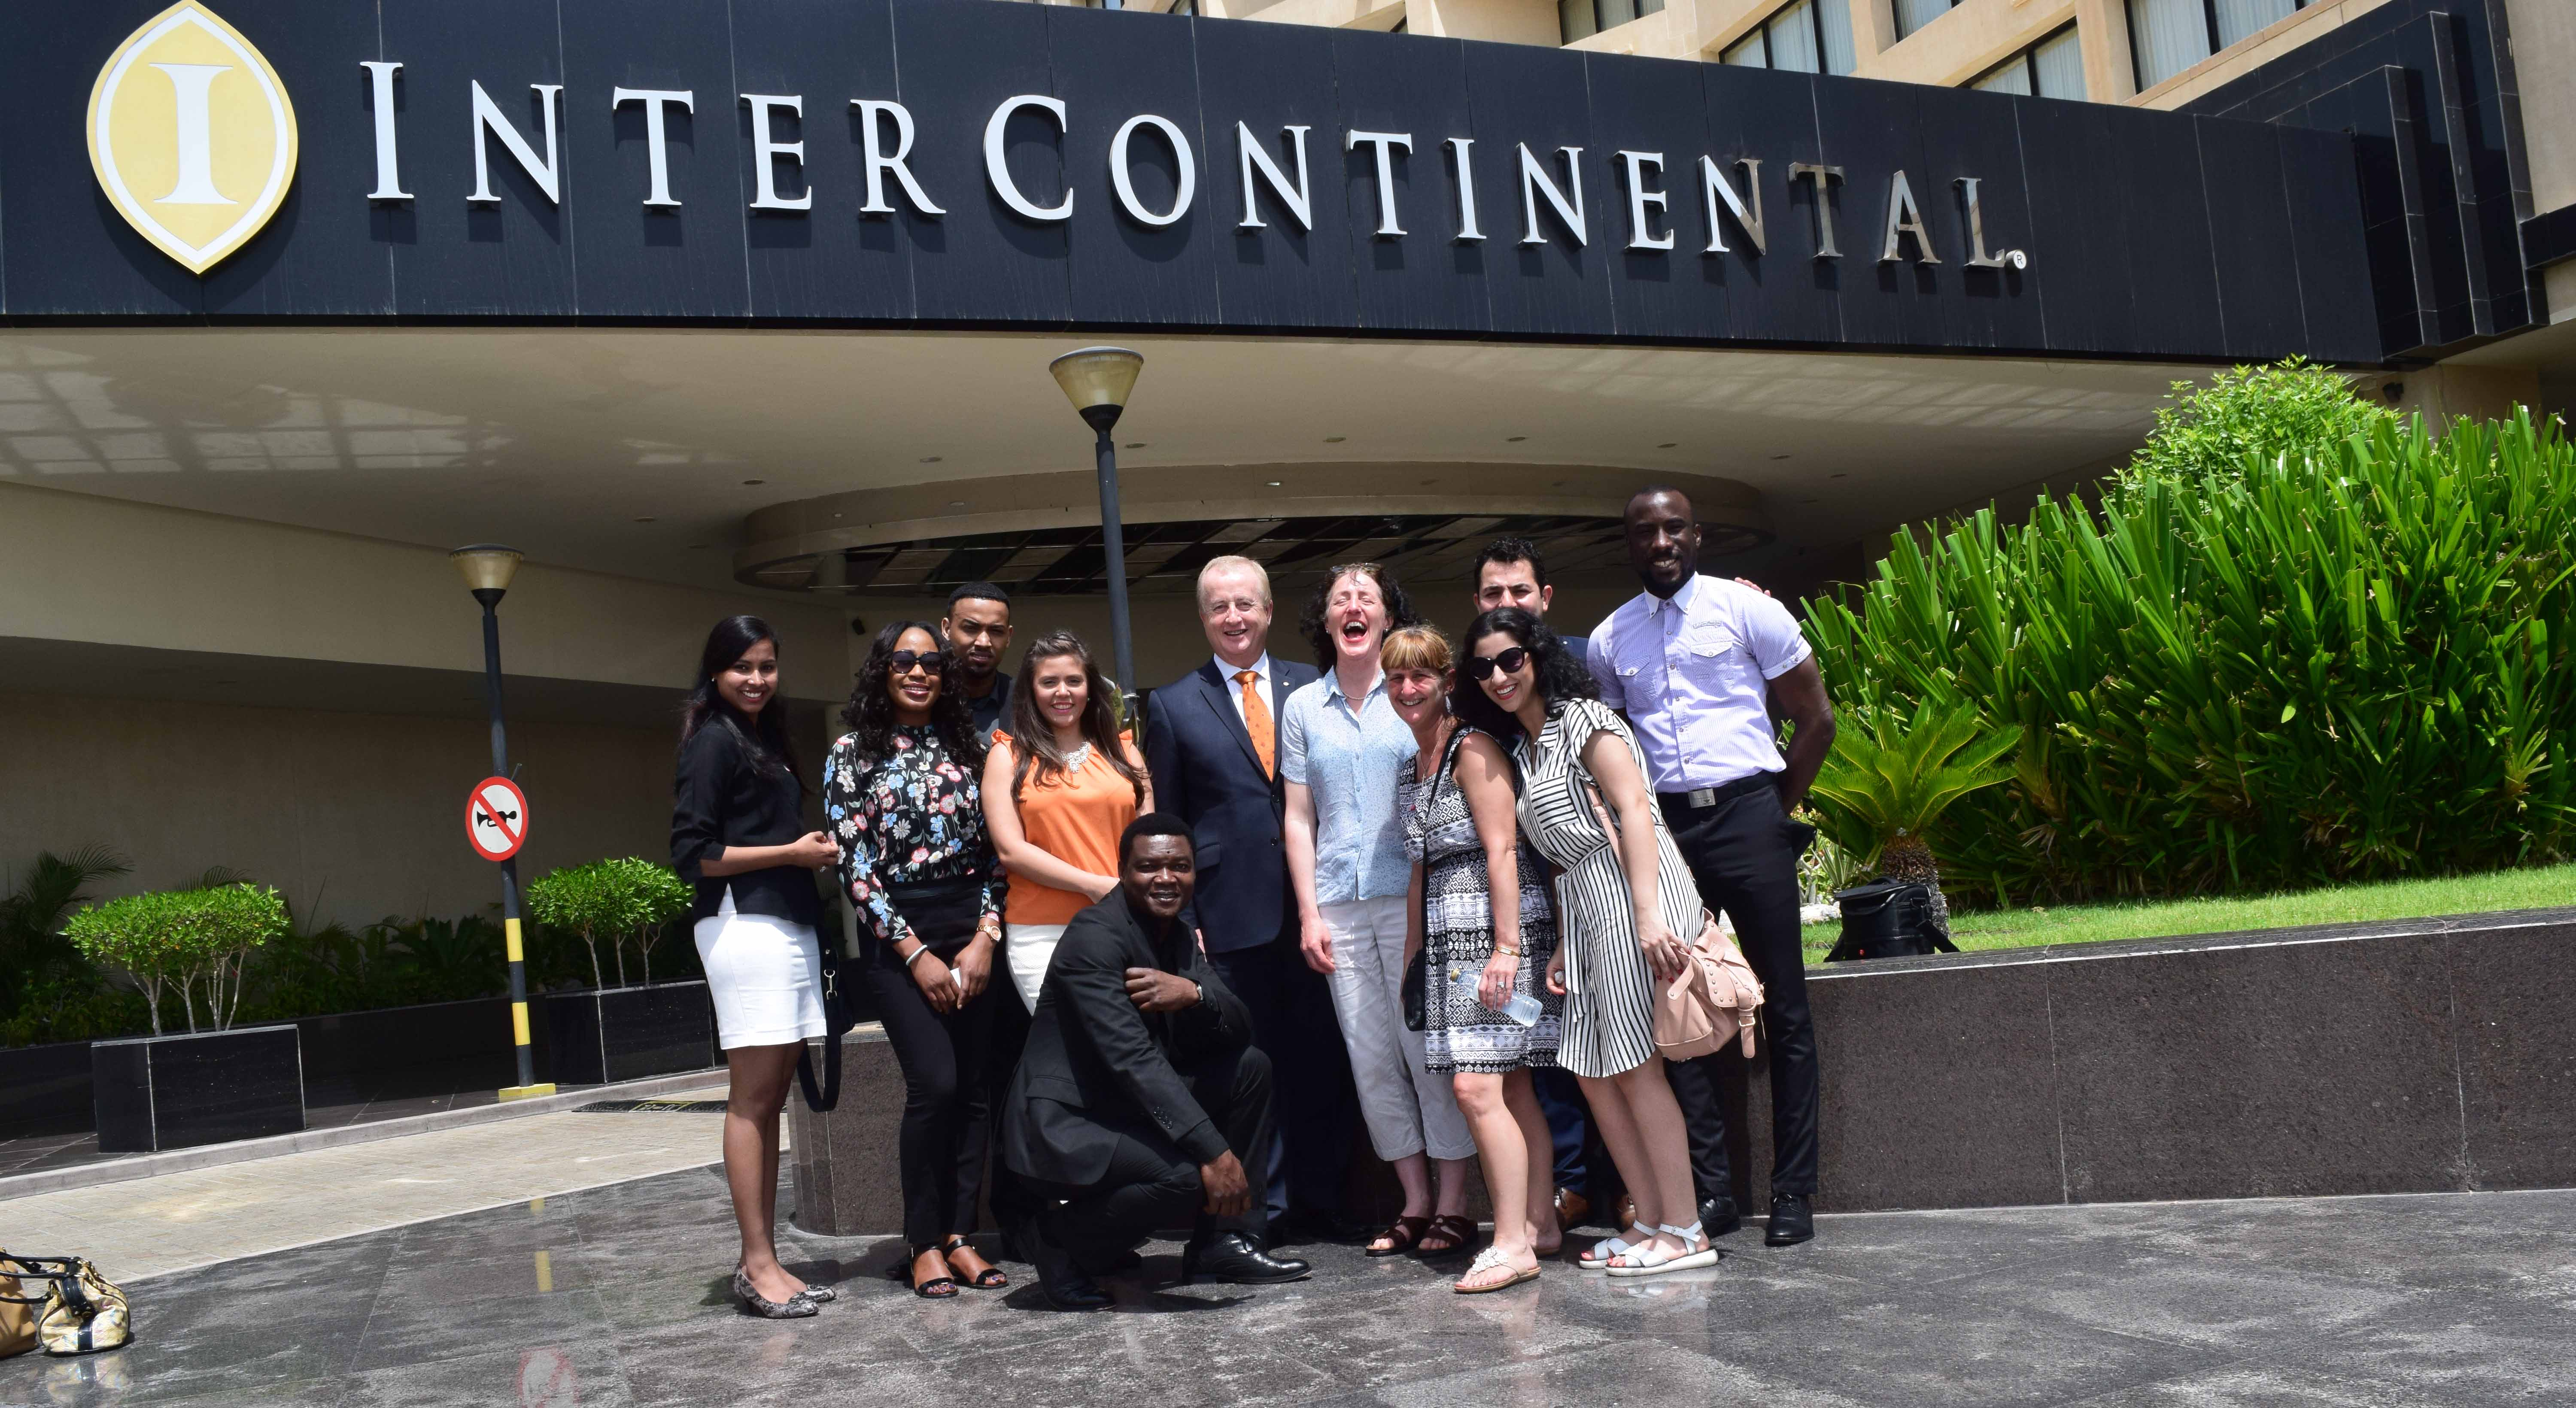 Salford MBA international trip-The Intercontinental Hotel Group